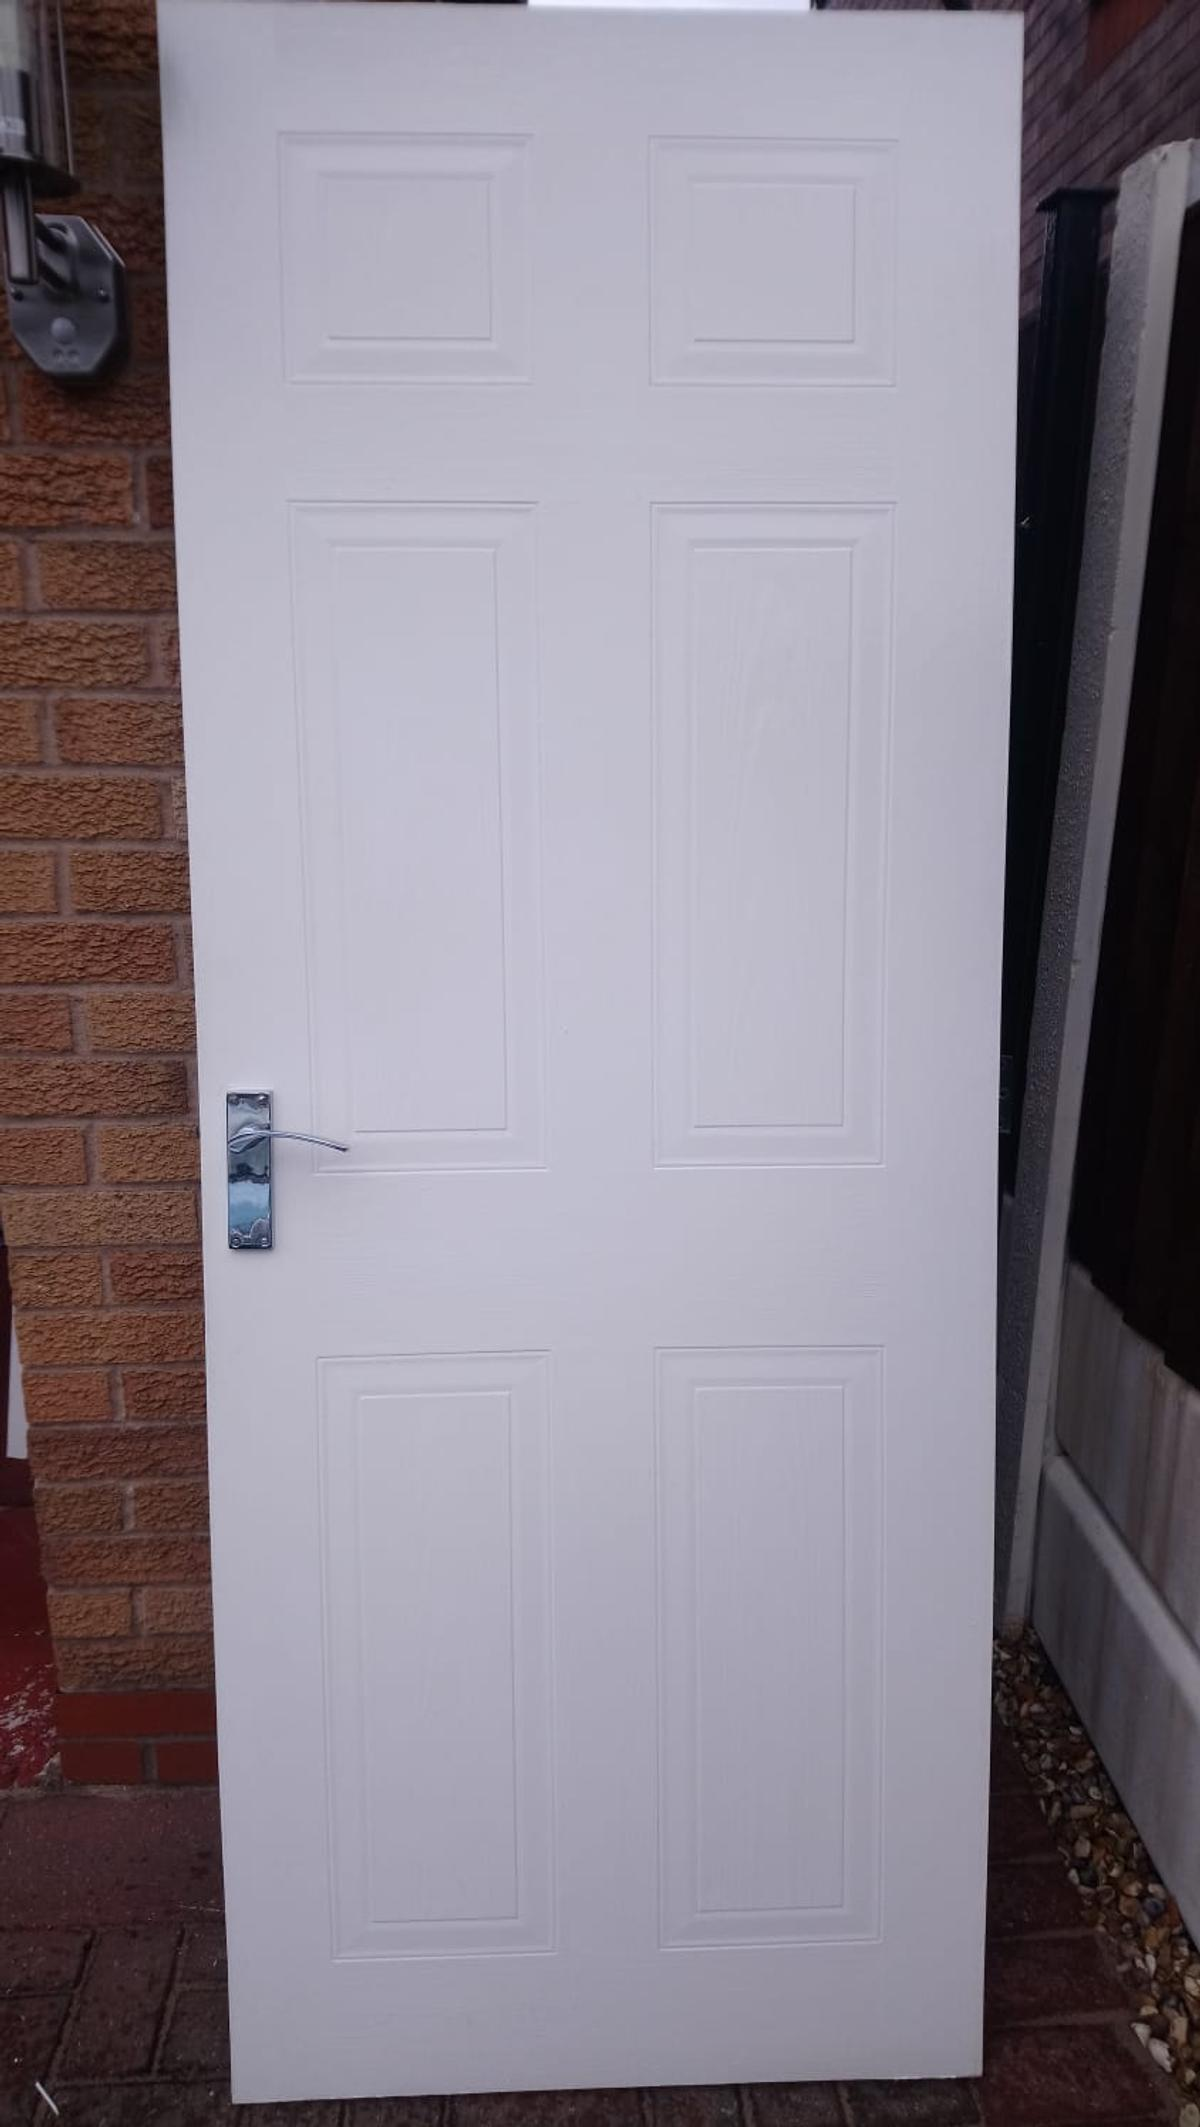 Interior Doors With Chrome Handles Hinges In Wigan For